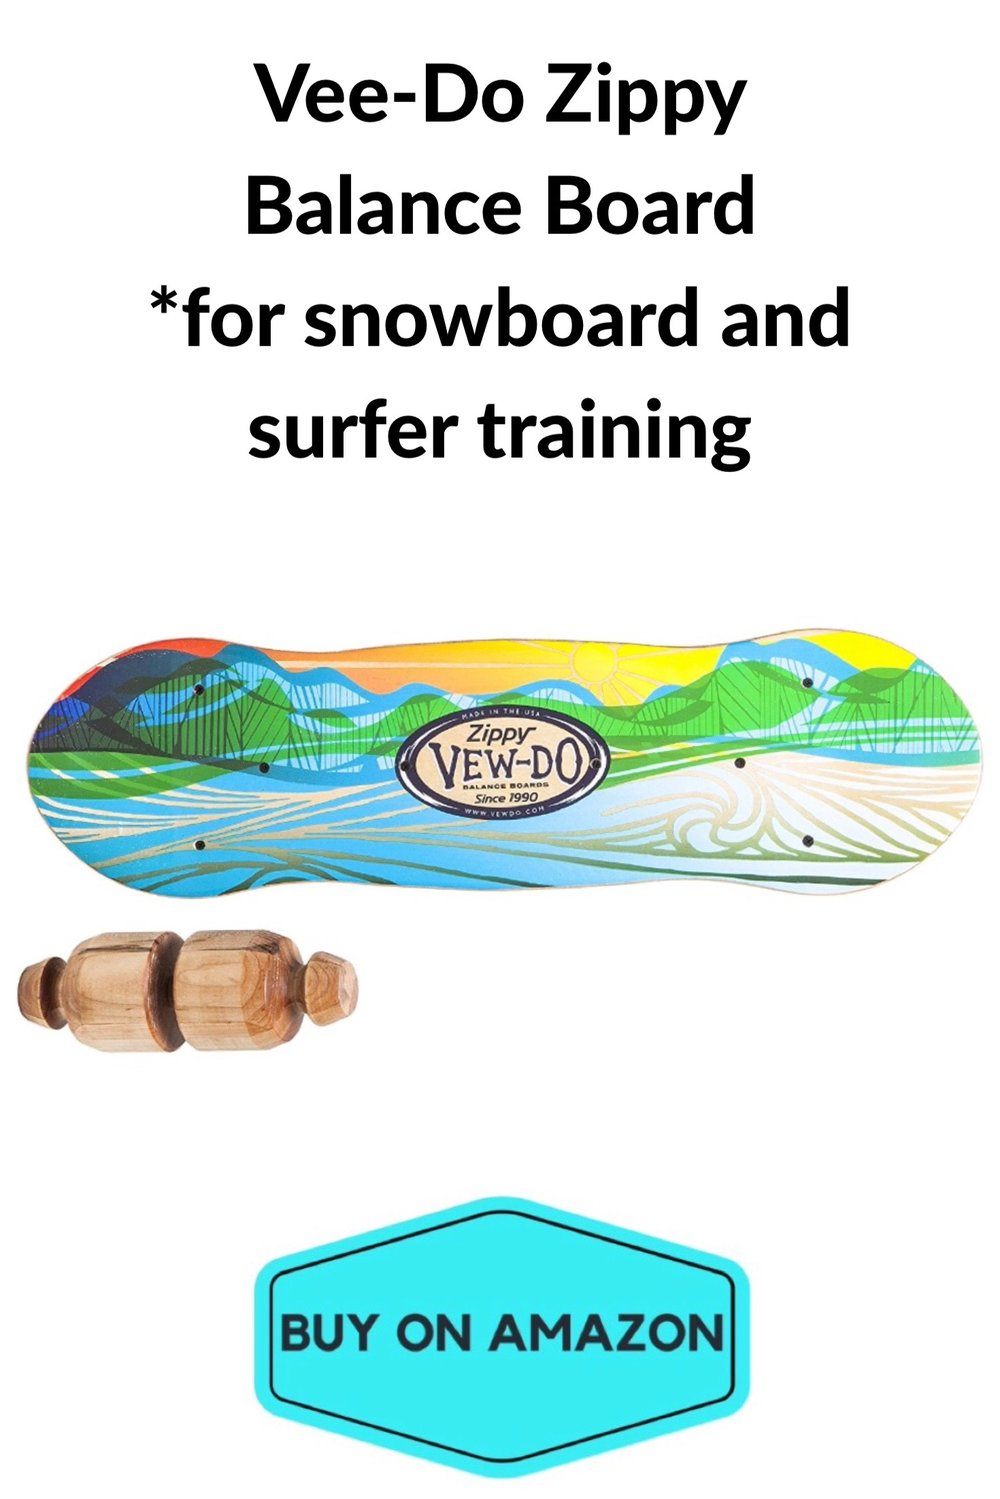 Vee-Do Zippy Balance Board